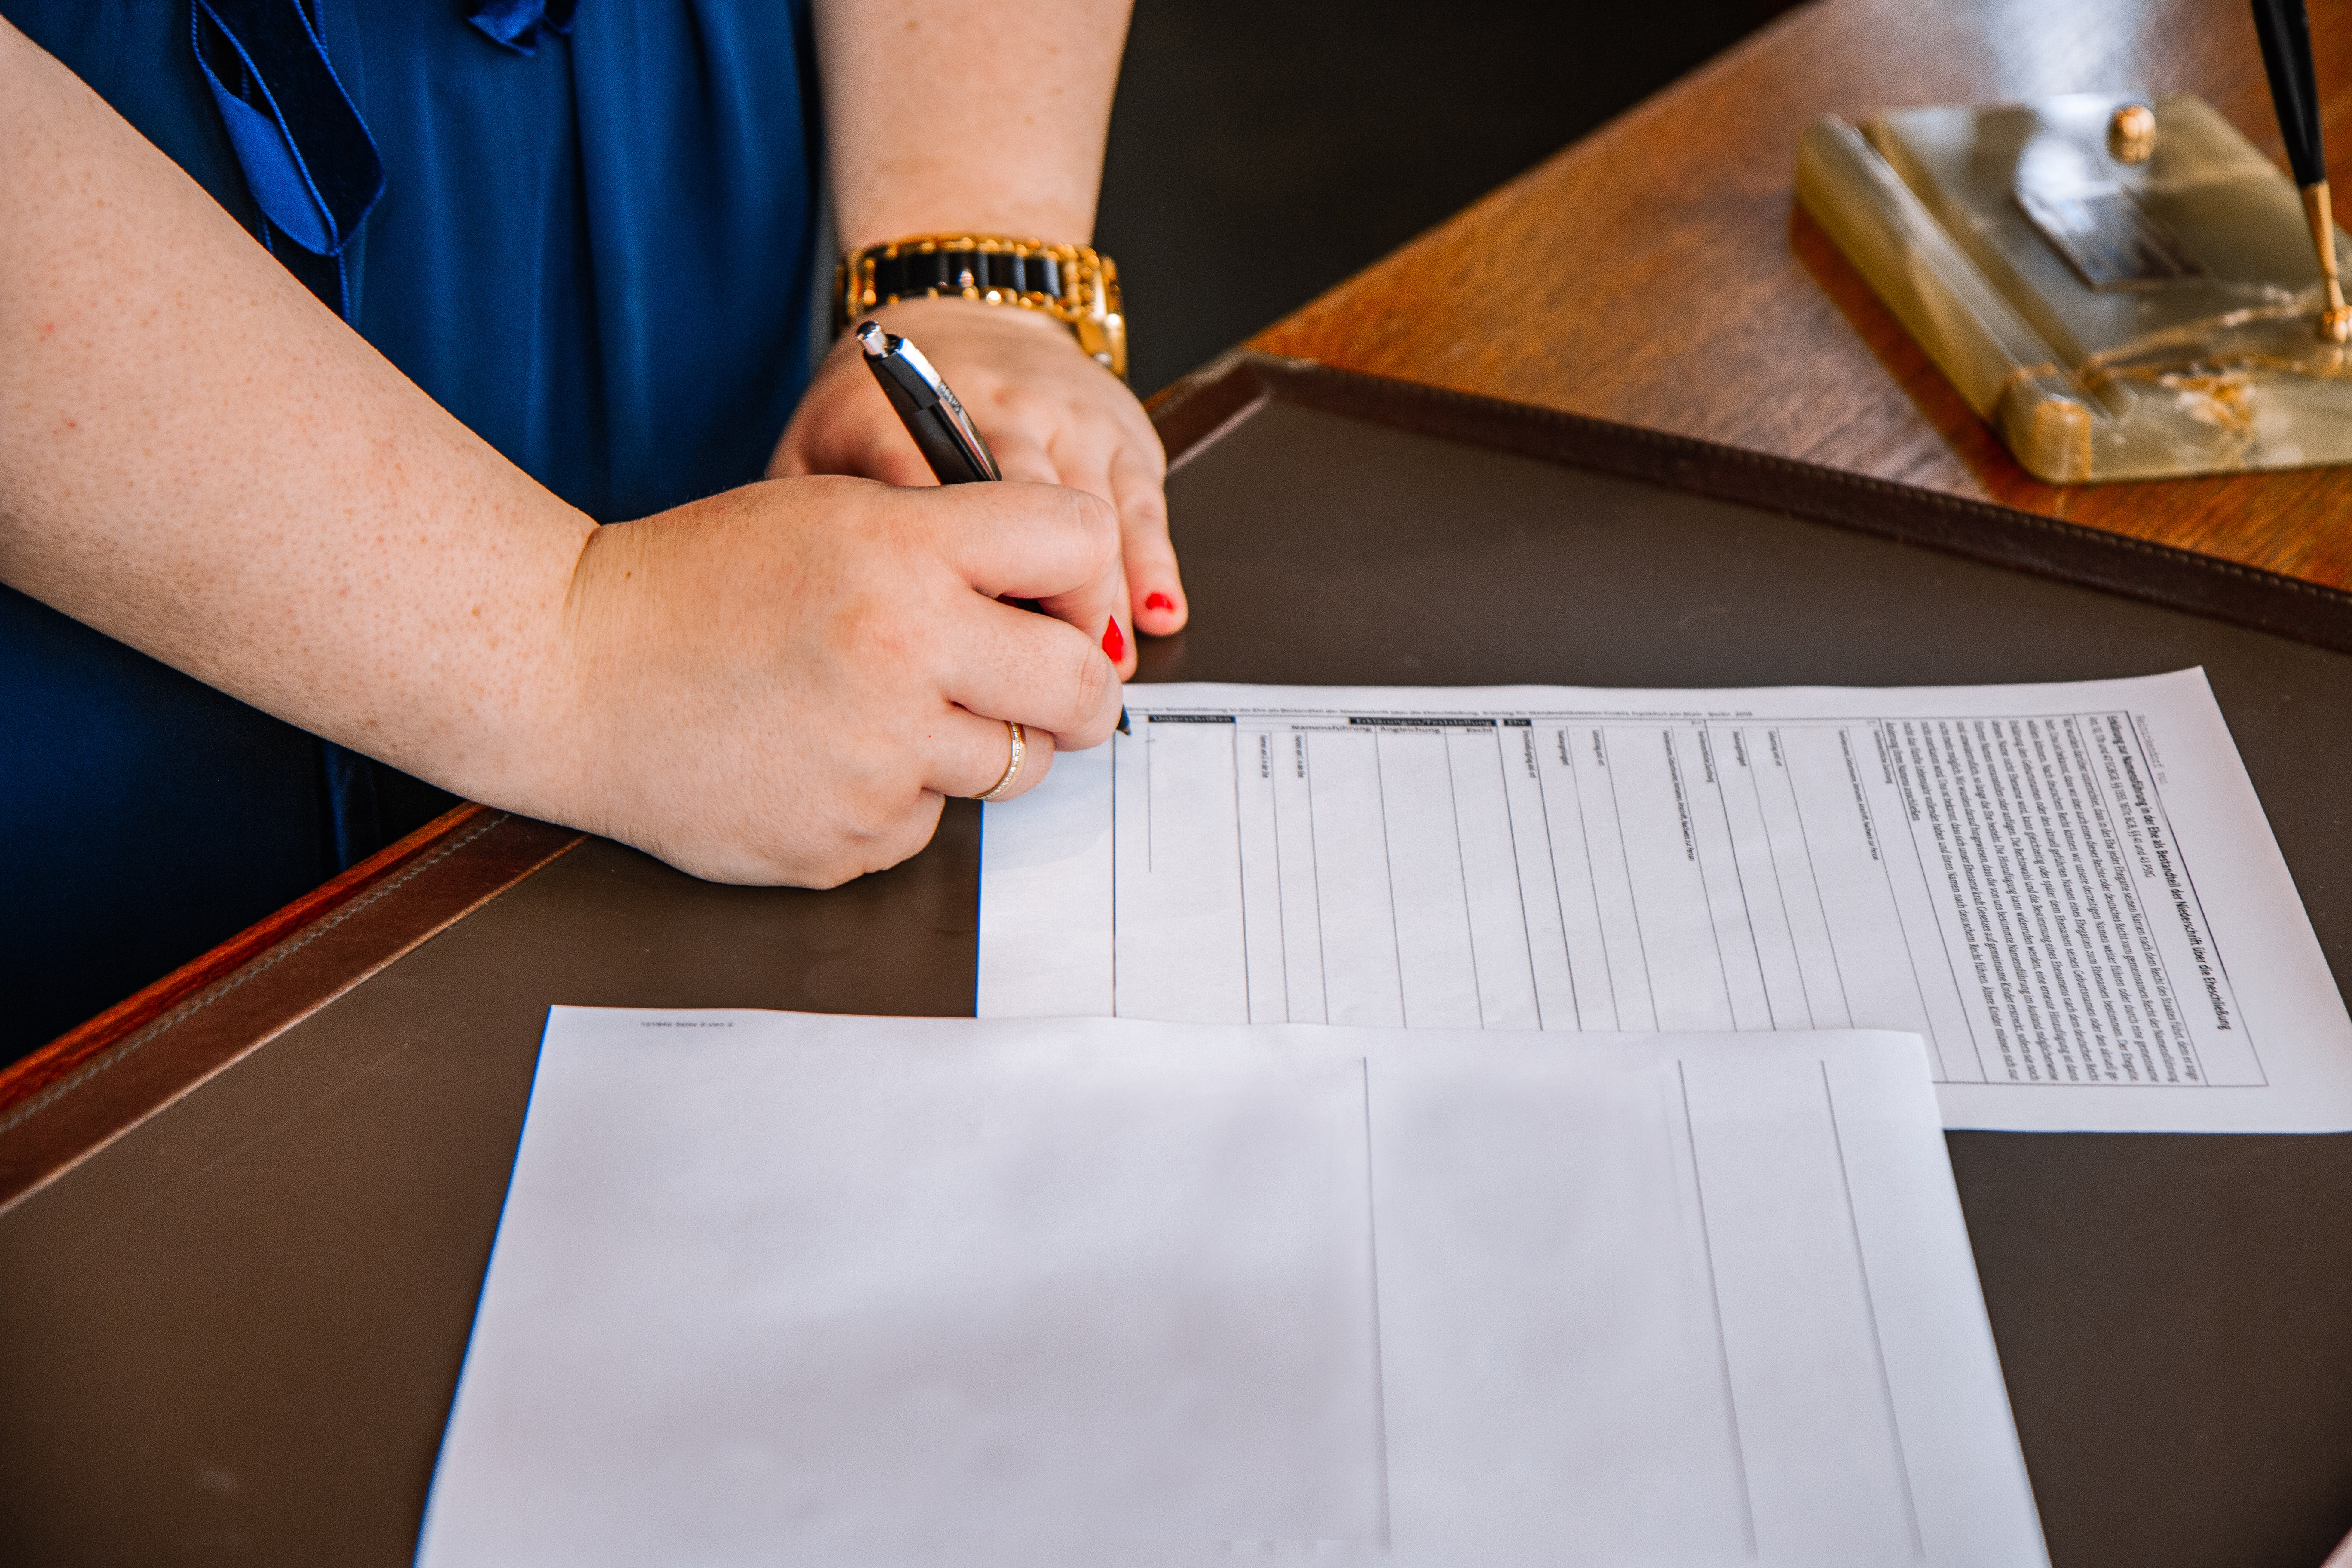 Woman at a notary signing a document